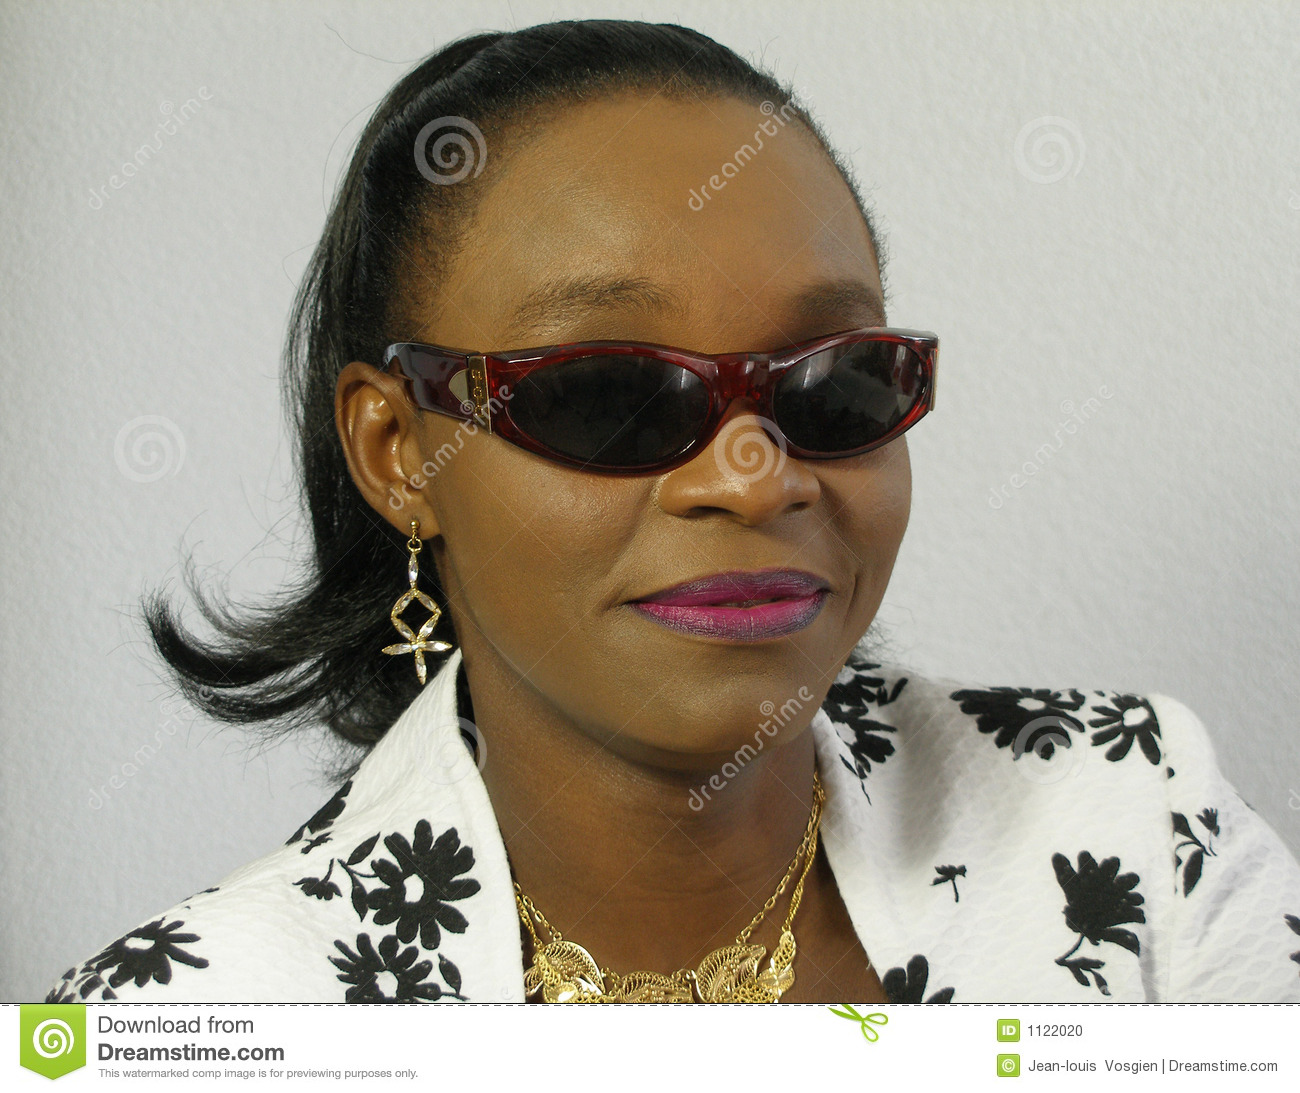 f613ac978d7 Black Woman Wearing Sunglasses Stock Photo - Image of portrait ...